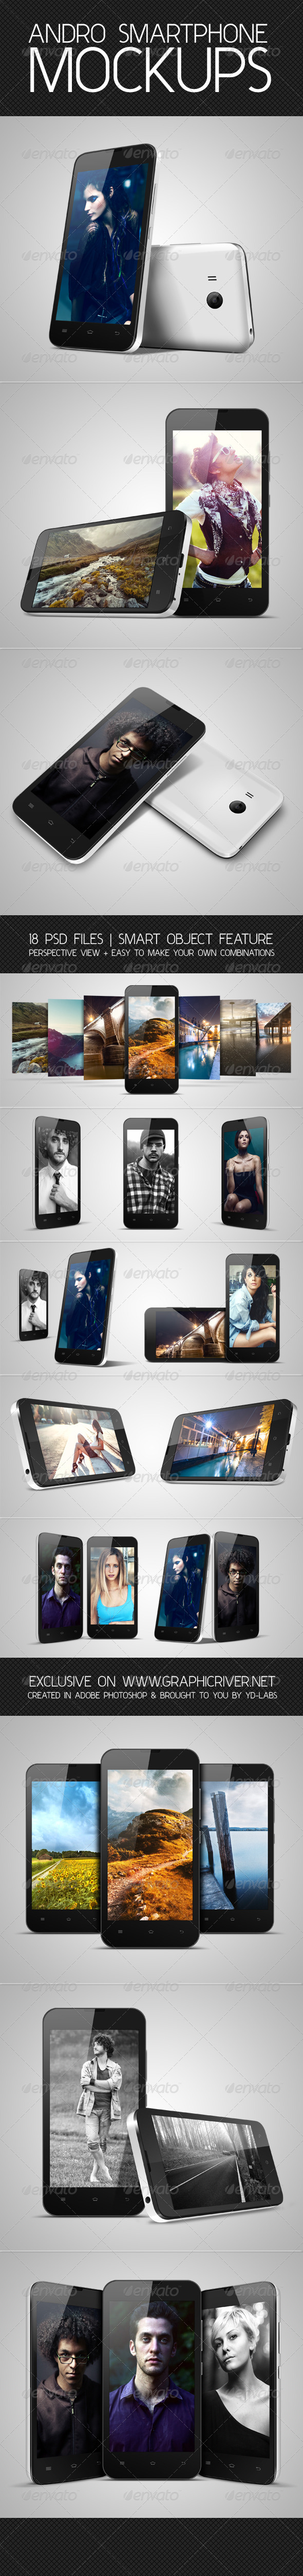 Andro Smartphone Mockups - Mobile Displays